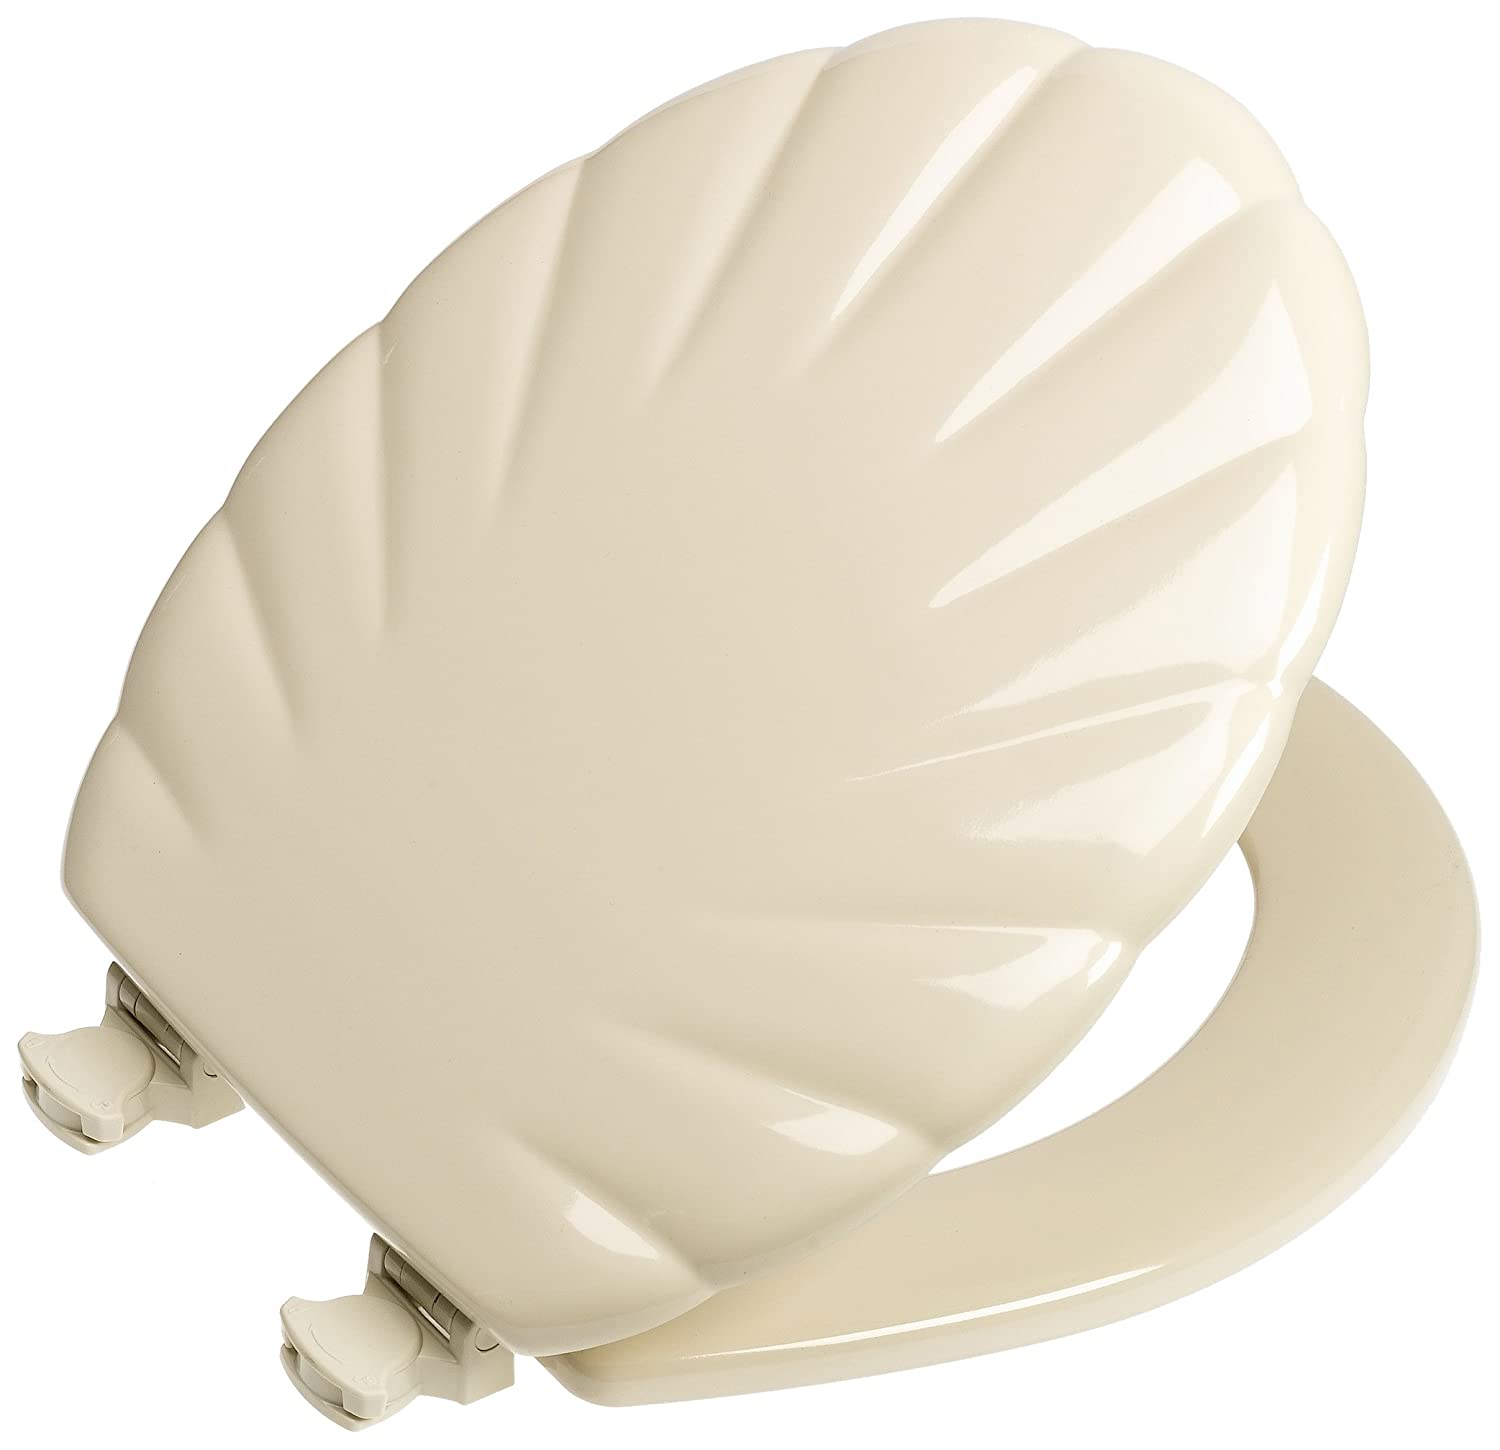 Mayfair 22ec 006 Shell Sculptured Molded Wood Toilet Seat With Lift Off Hinges Ebay